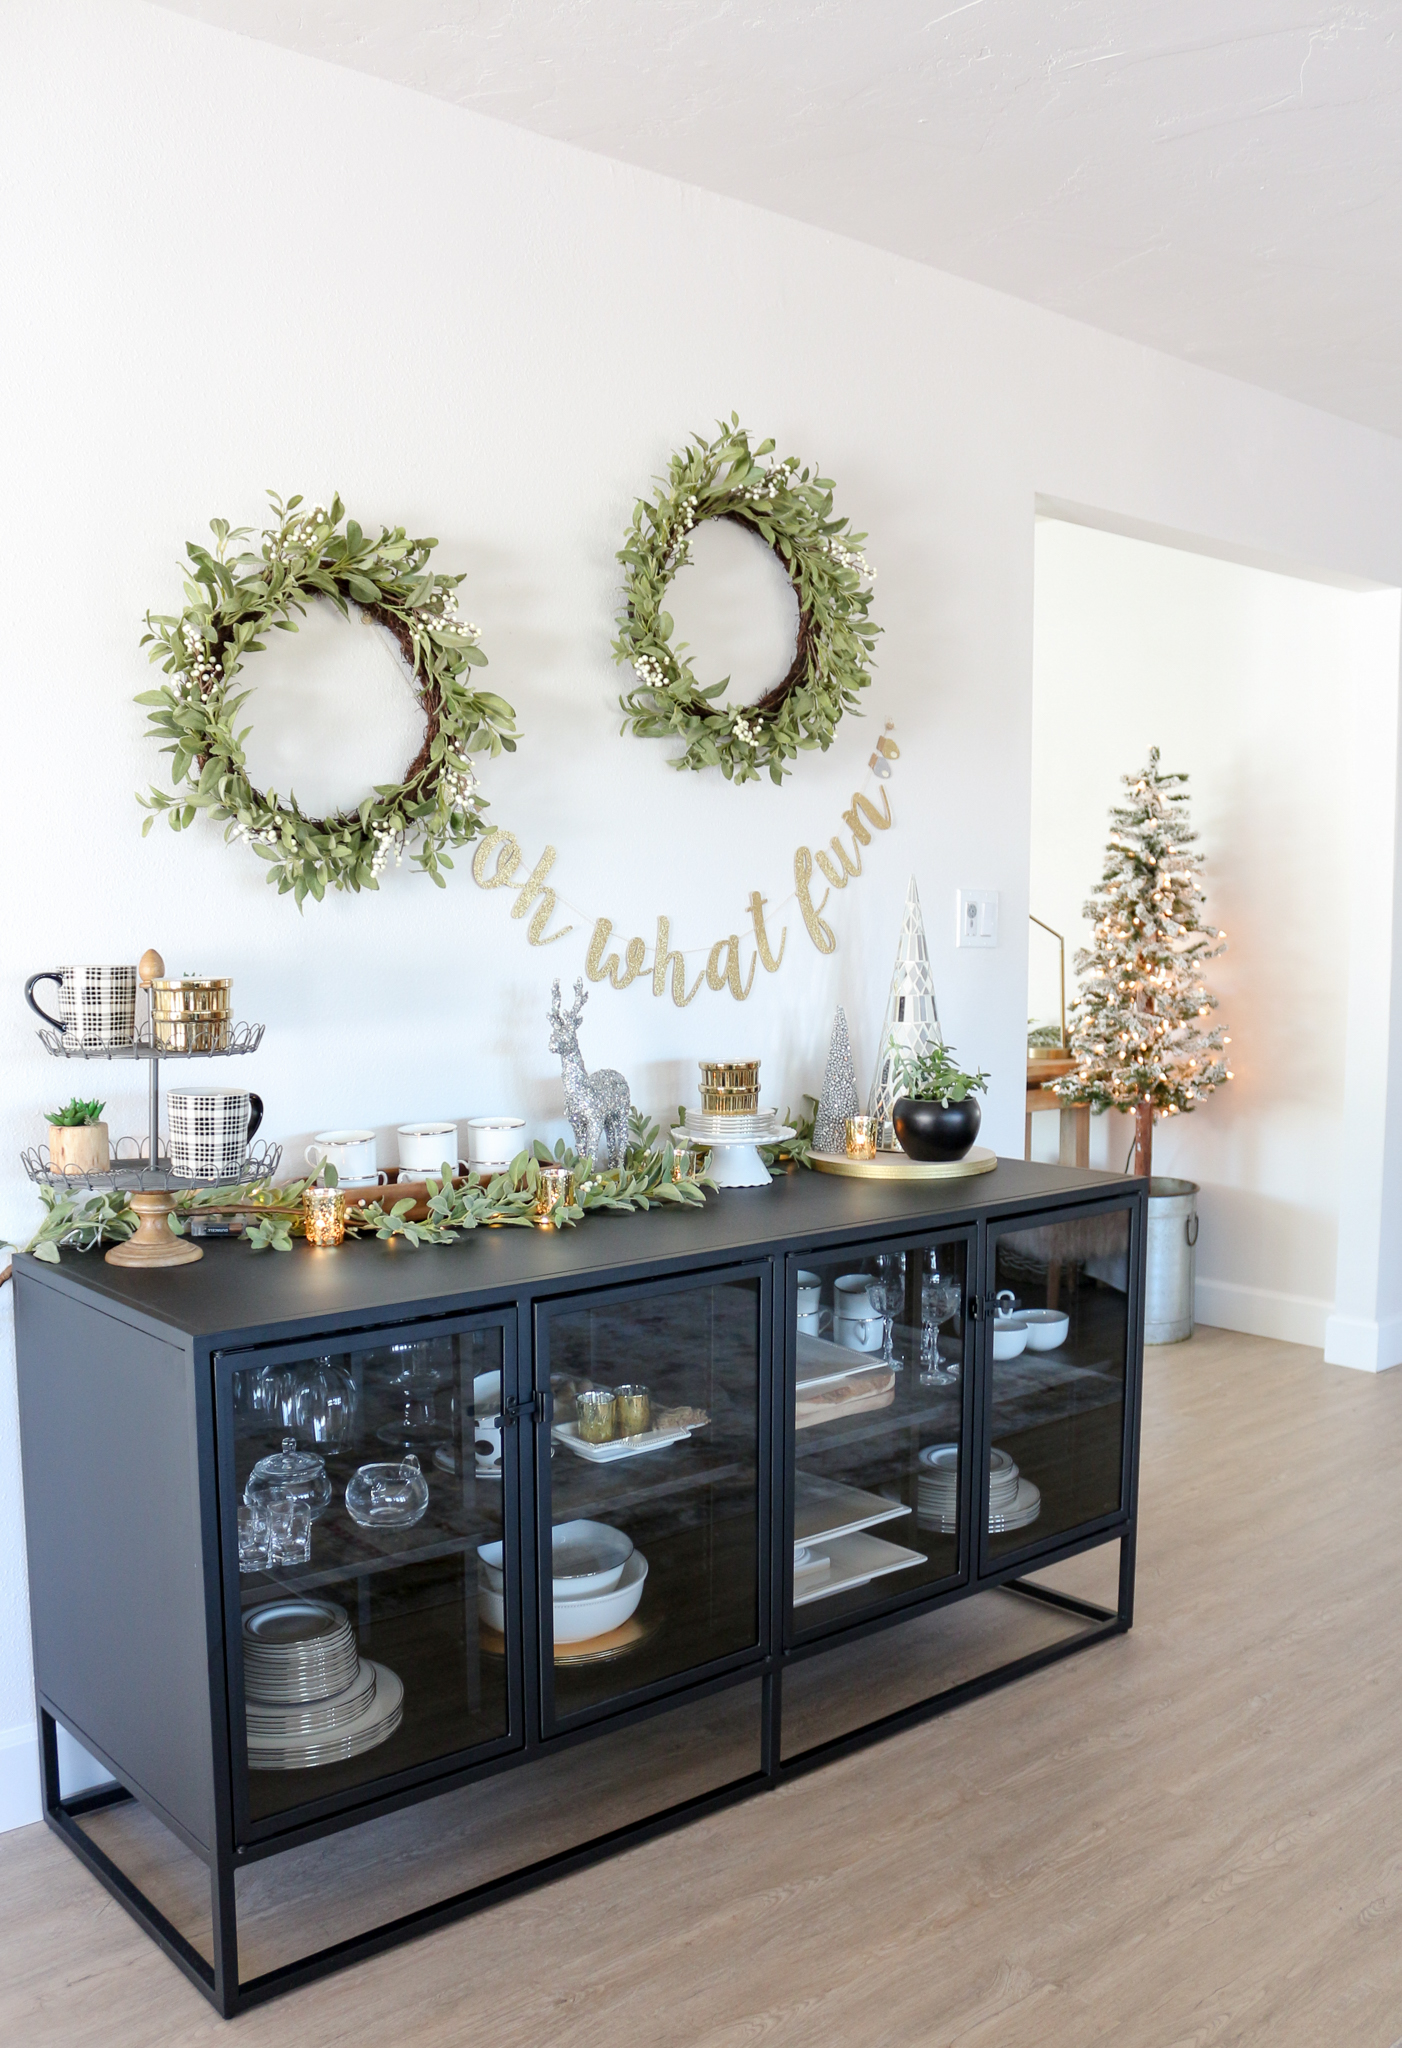 Black Sideboard Decorated Gold, White and Green for Christmas